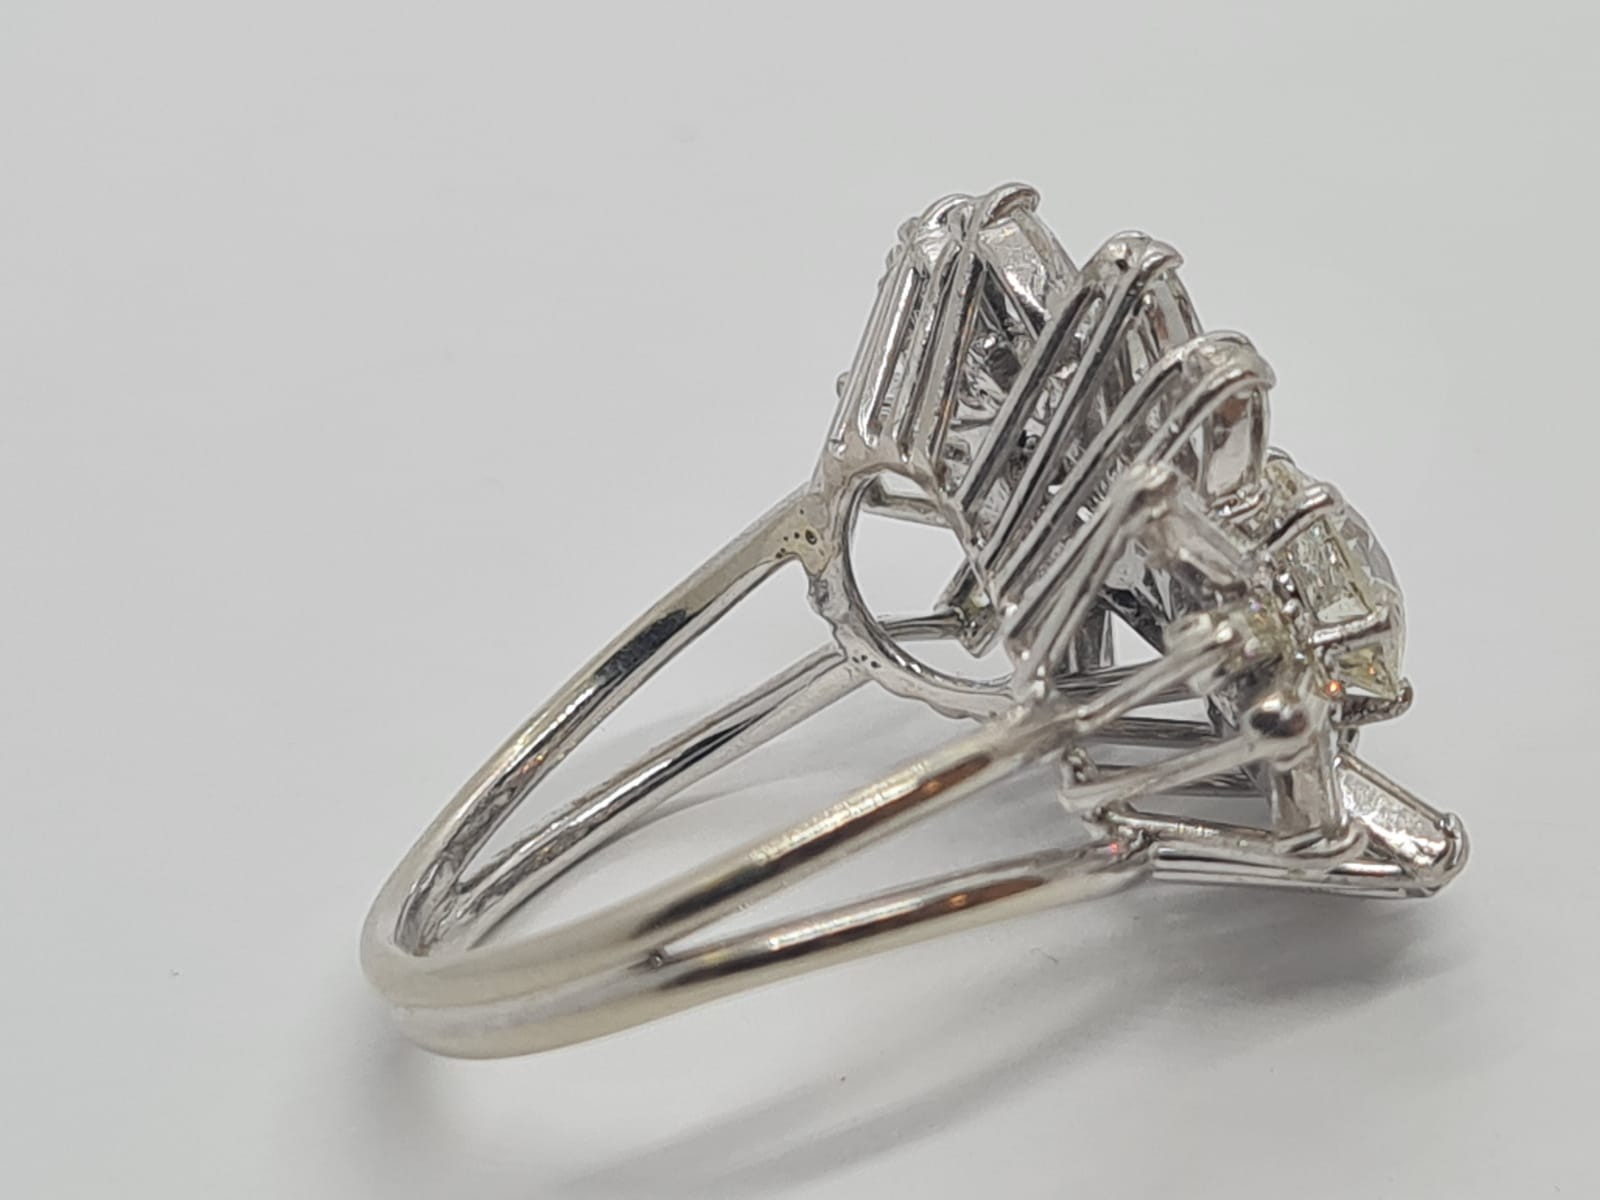 18k white gold diamond cluster ring with approx over 5ct diamonds in total, weight 10g and size M1/2 - Image 11 of 11